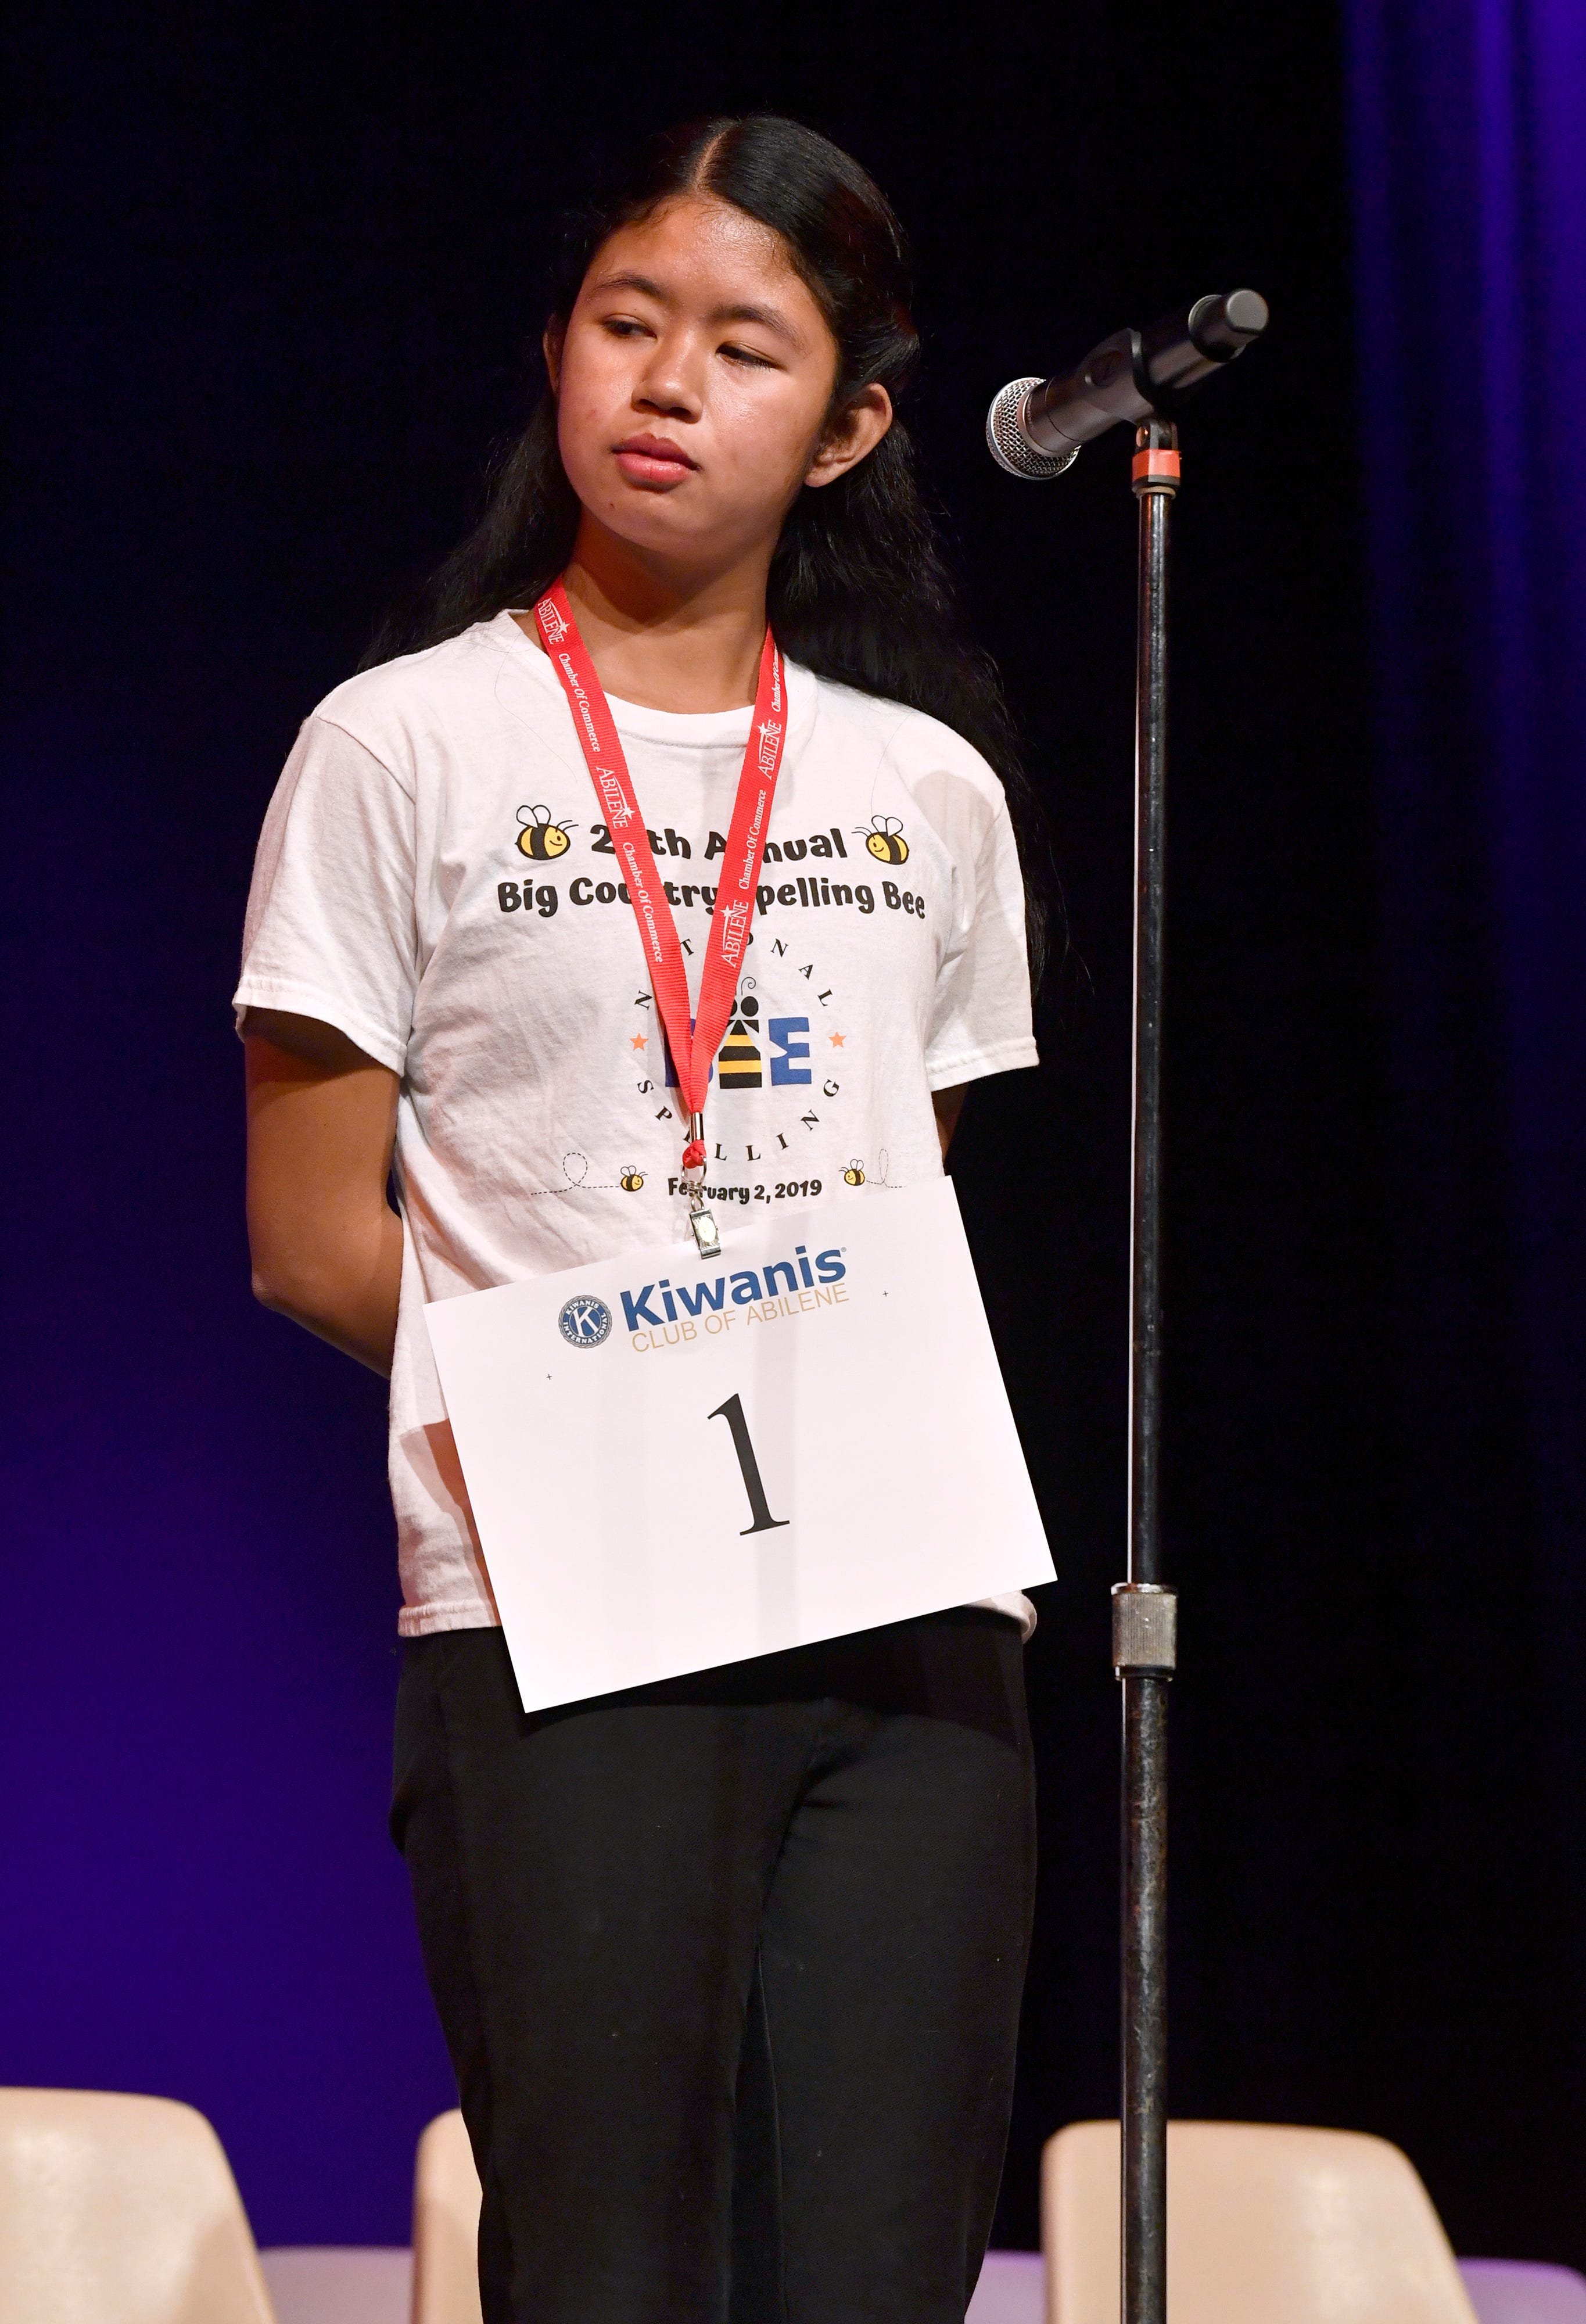 Neila Carias listens to the pronunciation of a word during Saturday's 20th Big Country Spelling Bee. Neila, a student at Clack Middle School, was the winner in the contest at Hardin-Simmons University's Van Ellis Theatre.